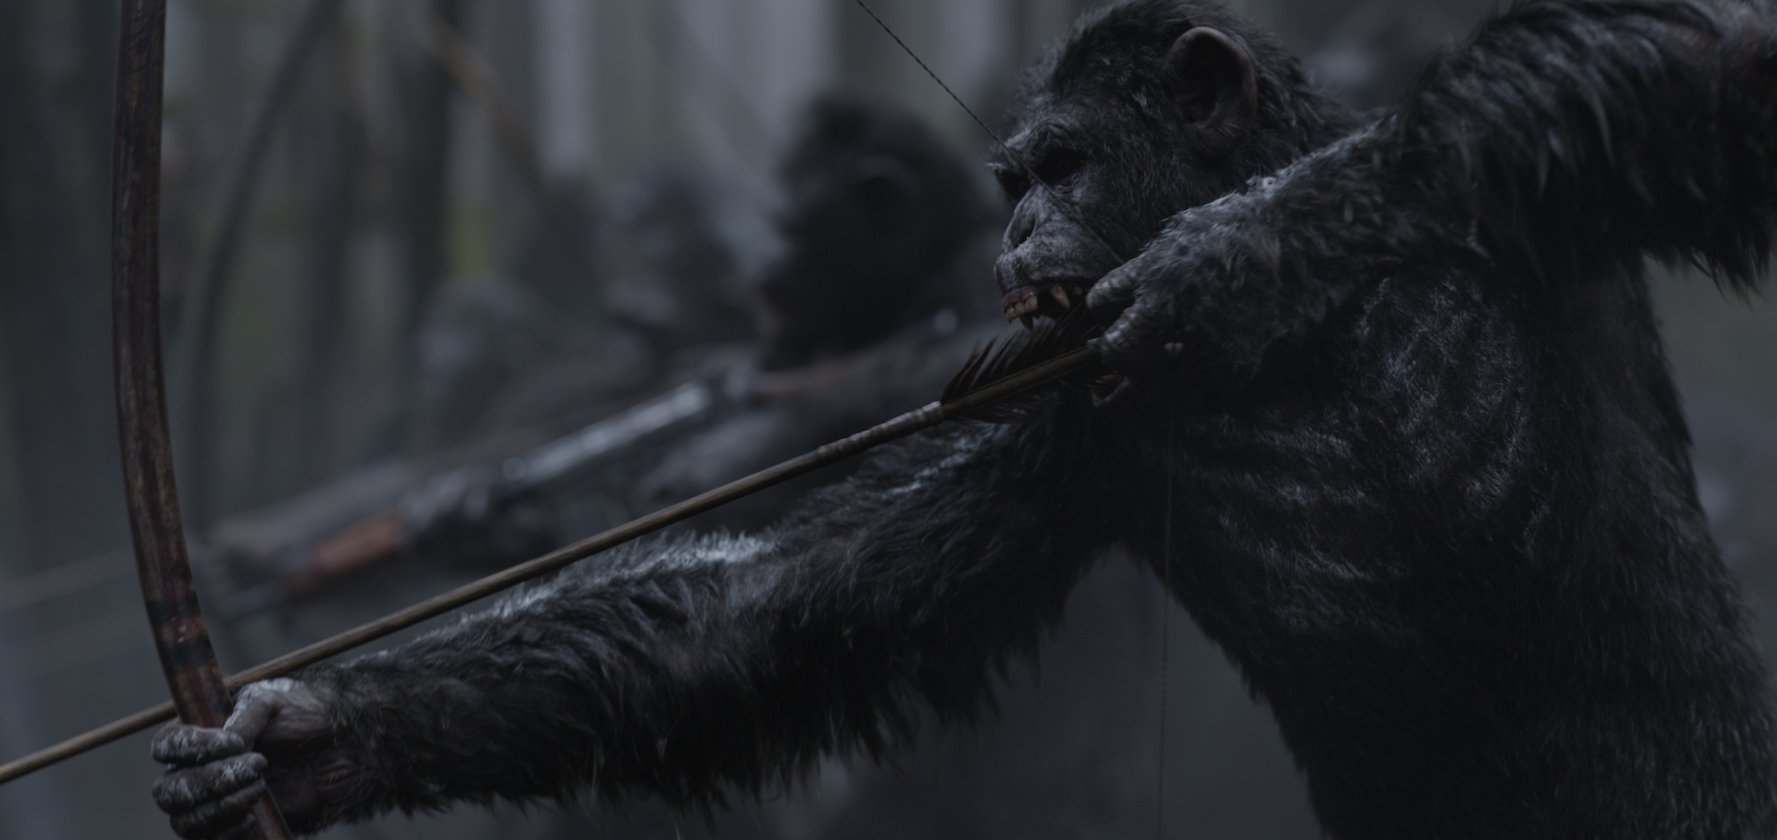 war-for-the-planet-of-the-apes-09dezembro2016-6